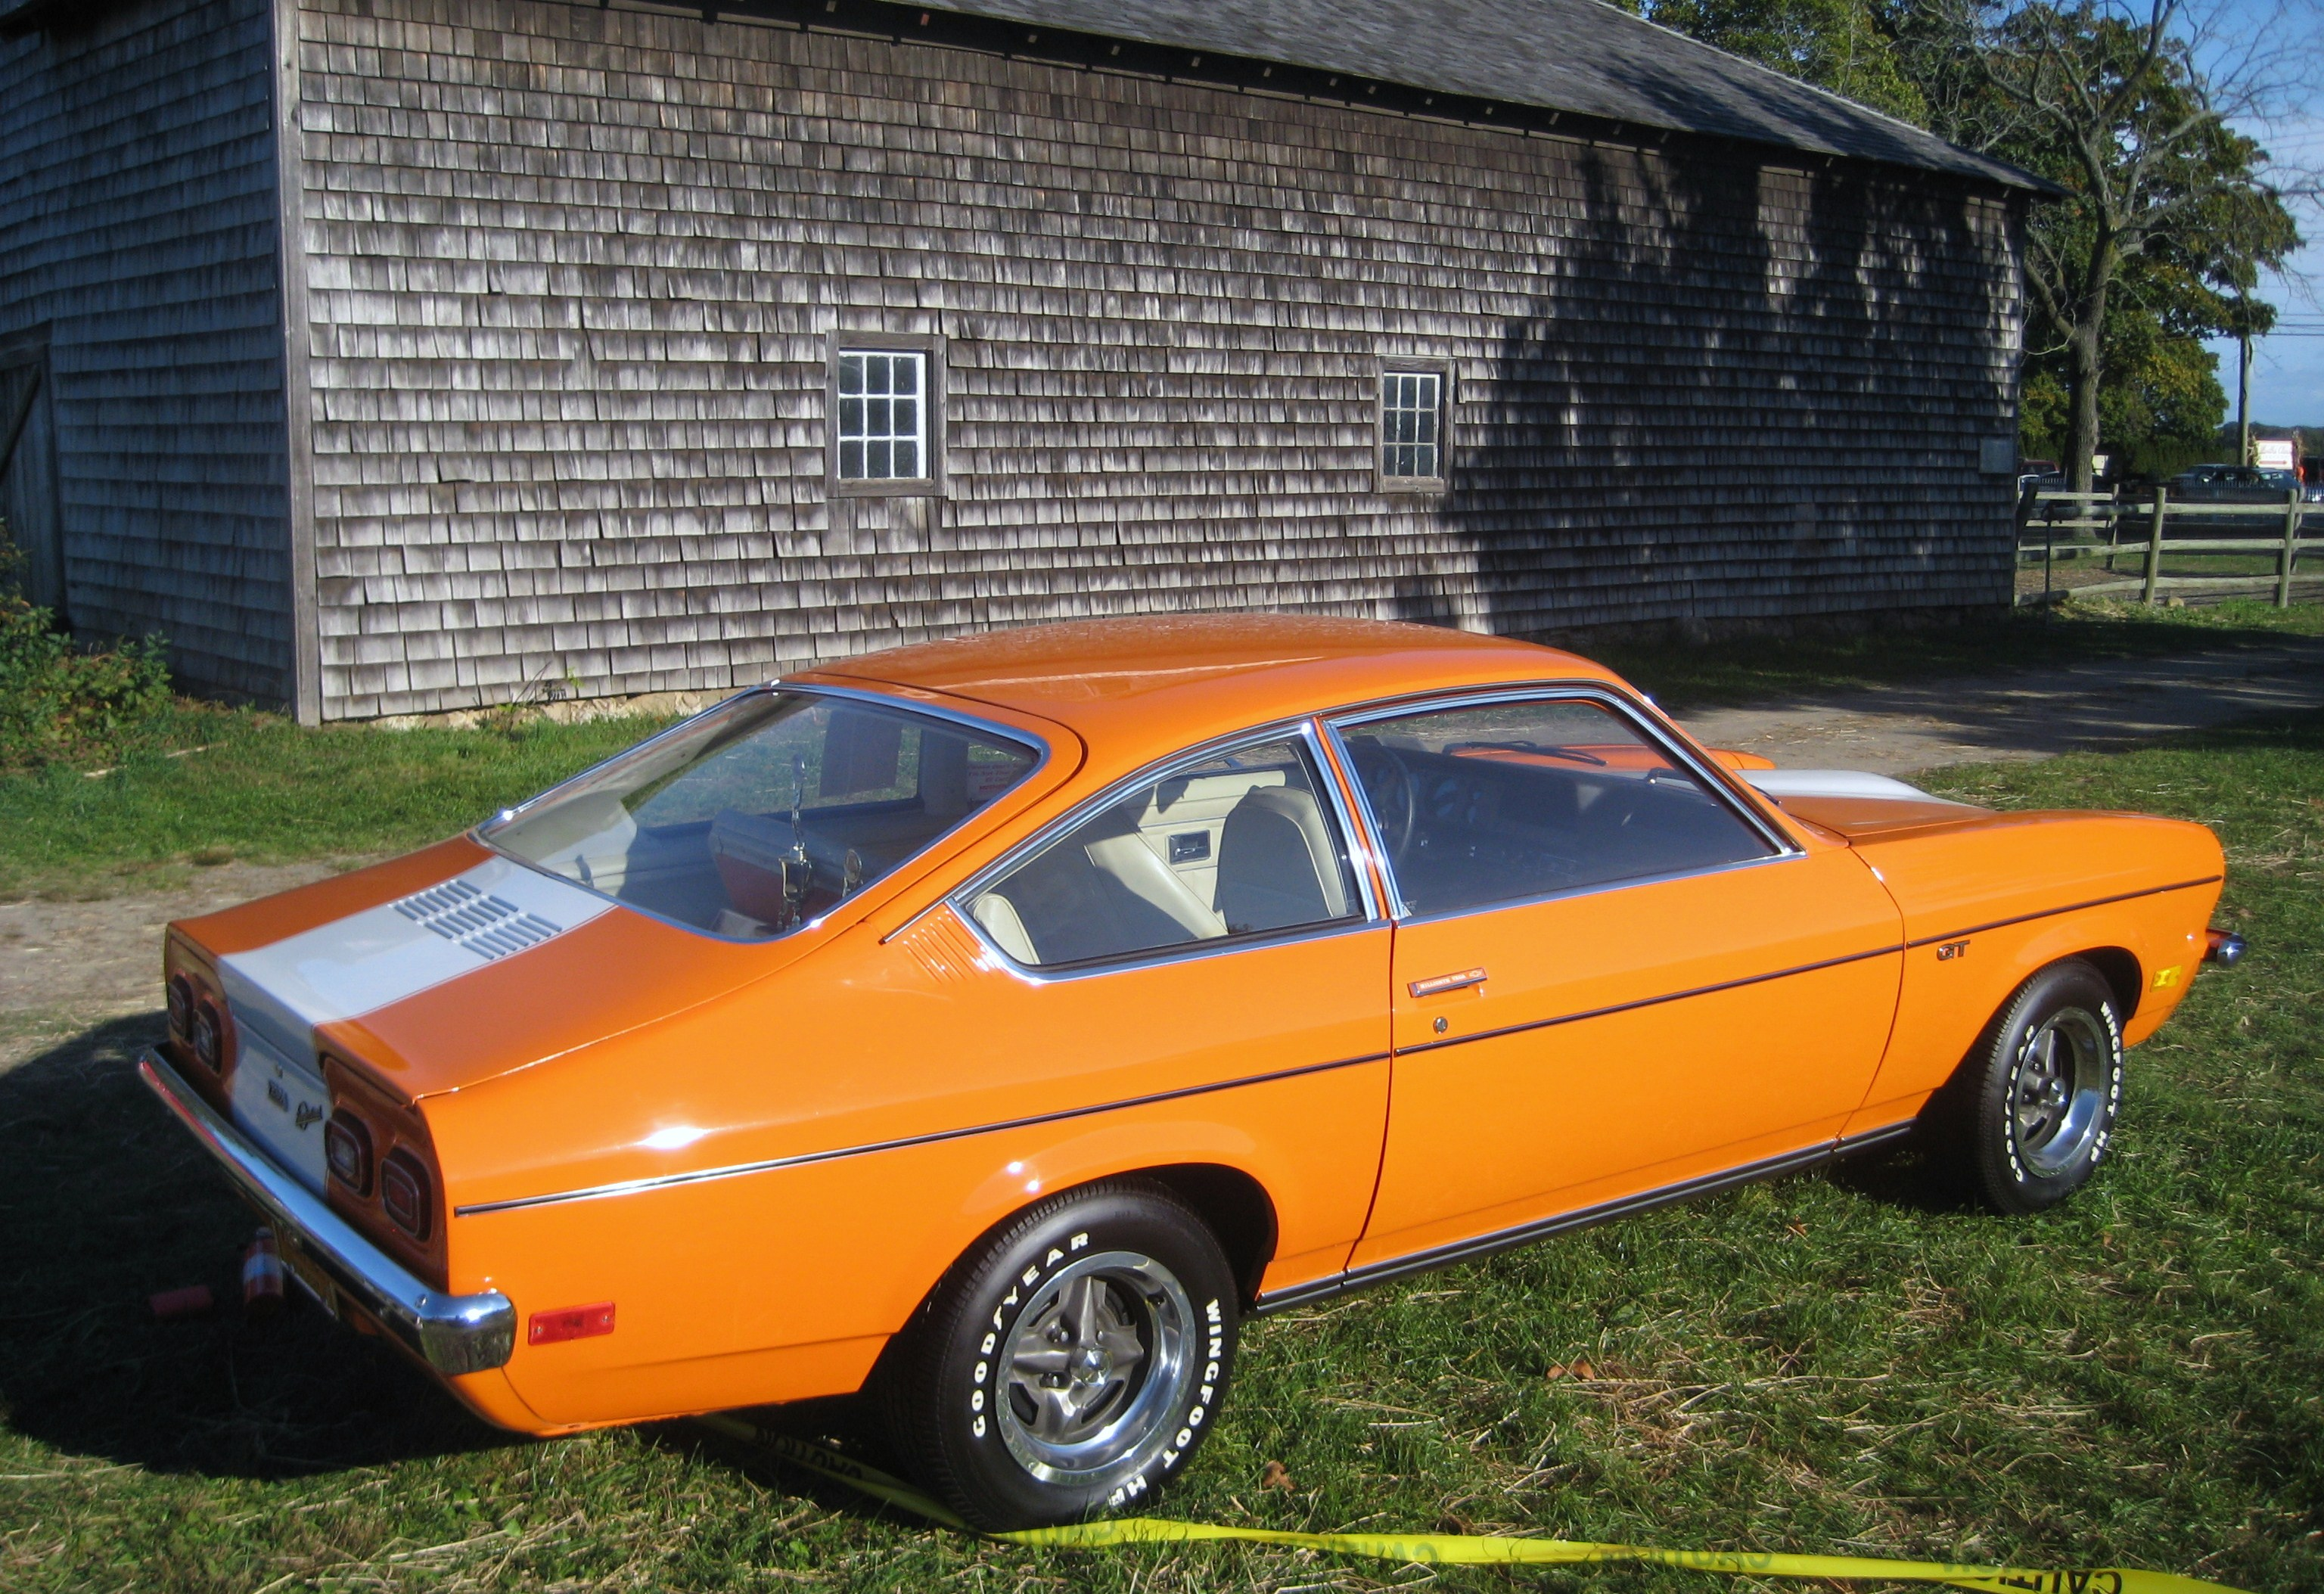 File:73 Vega GT Hatchback jpg - Wikimedia Commons